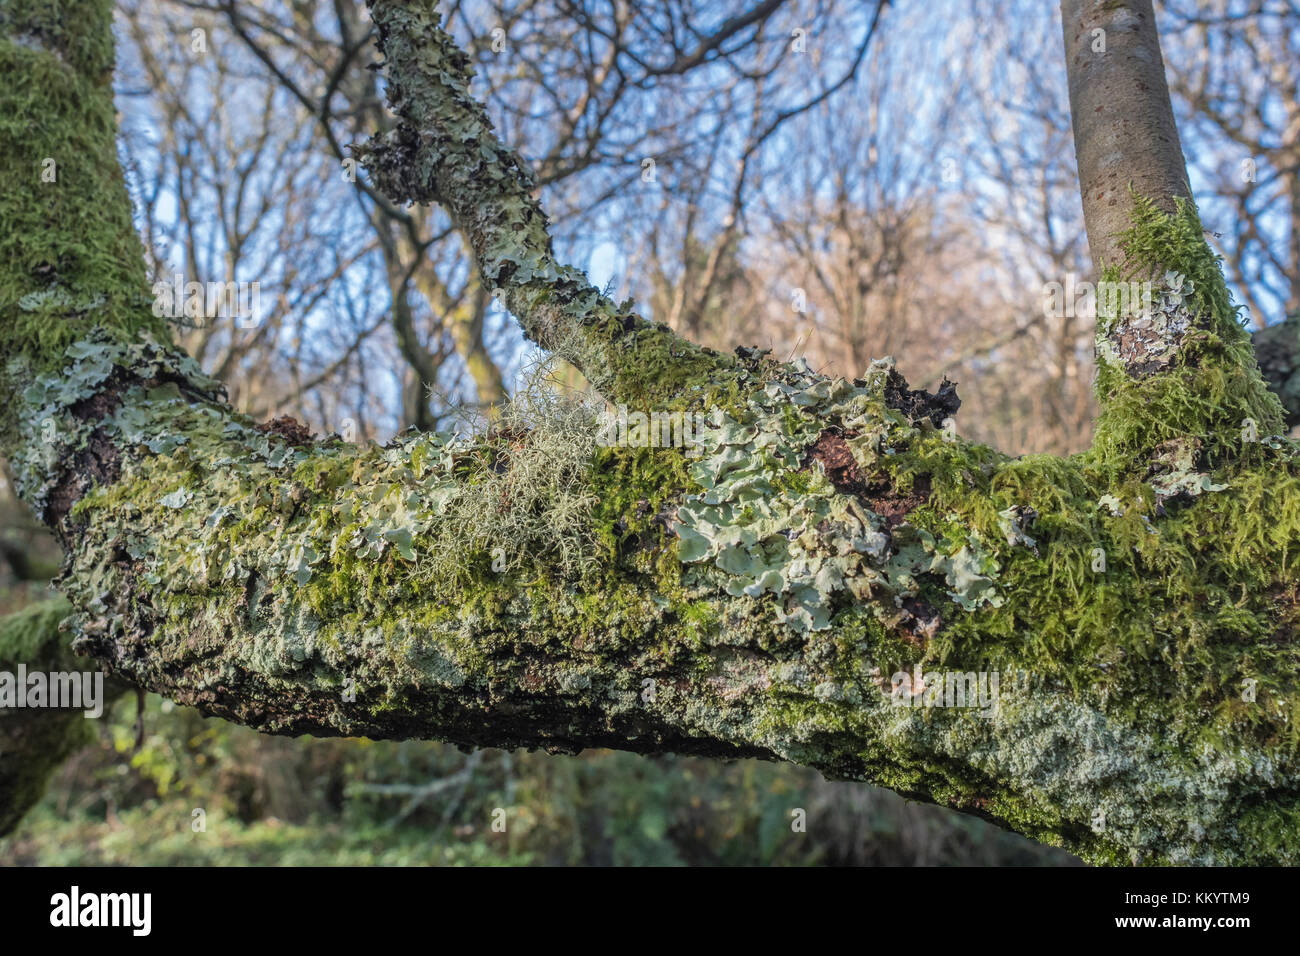 A couple of trypes of lichen on a rural tree branch. - Stock Image